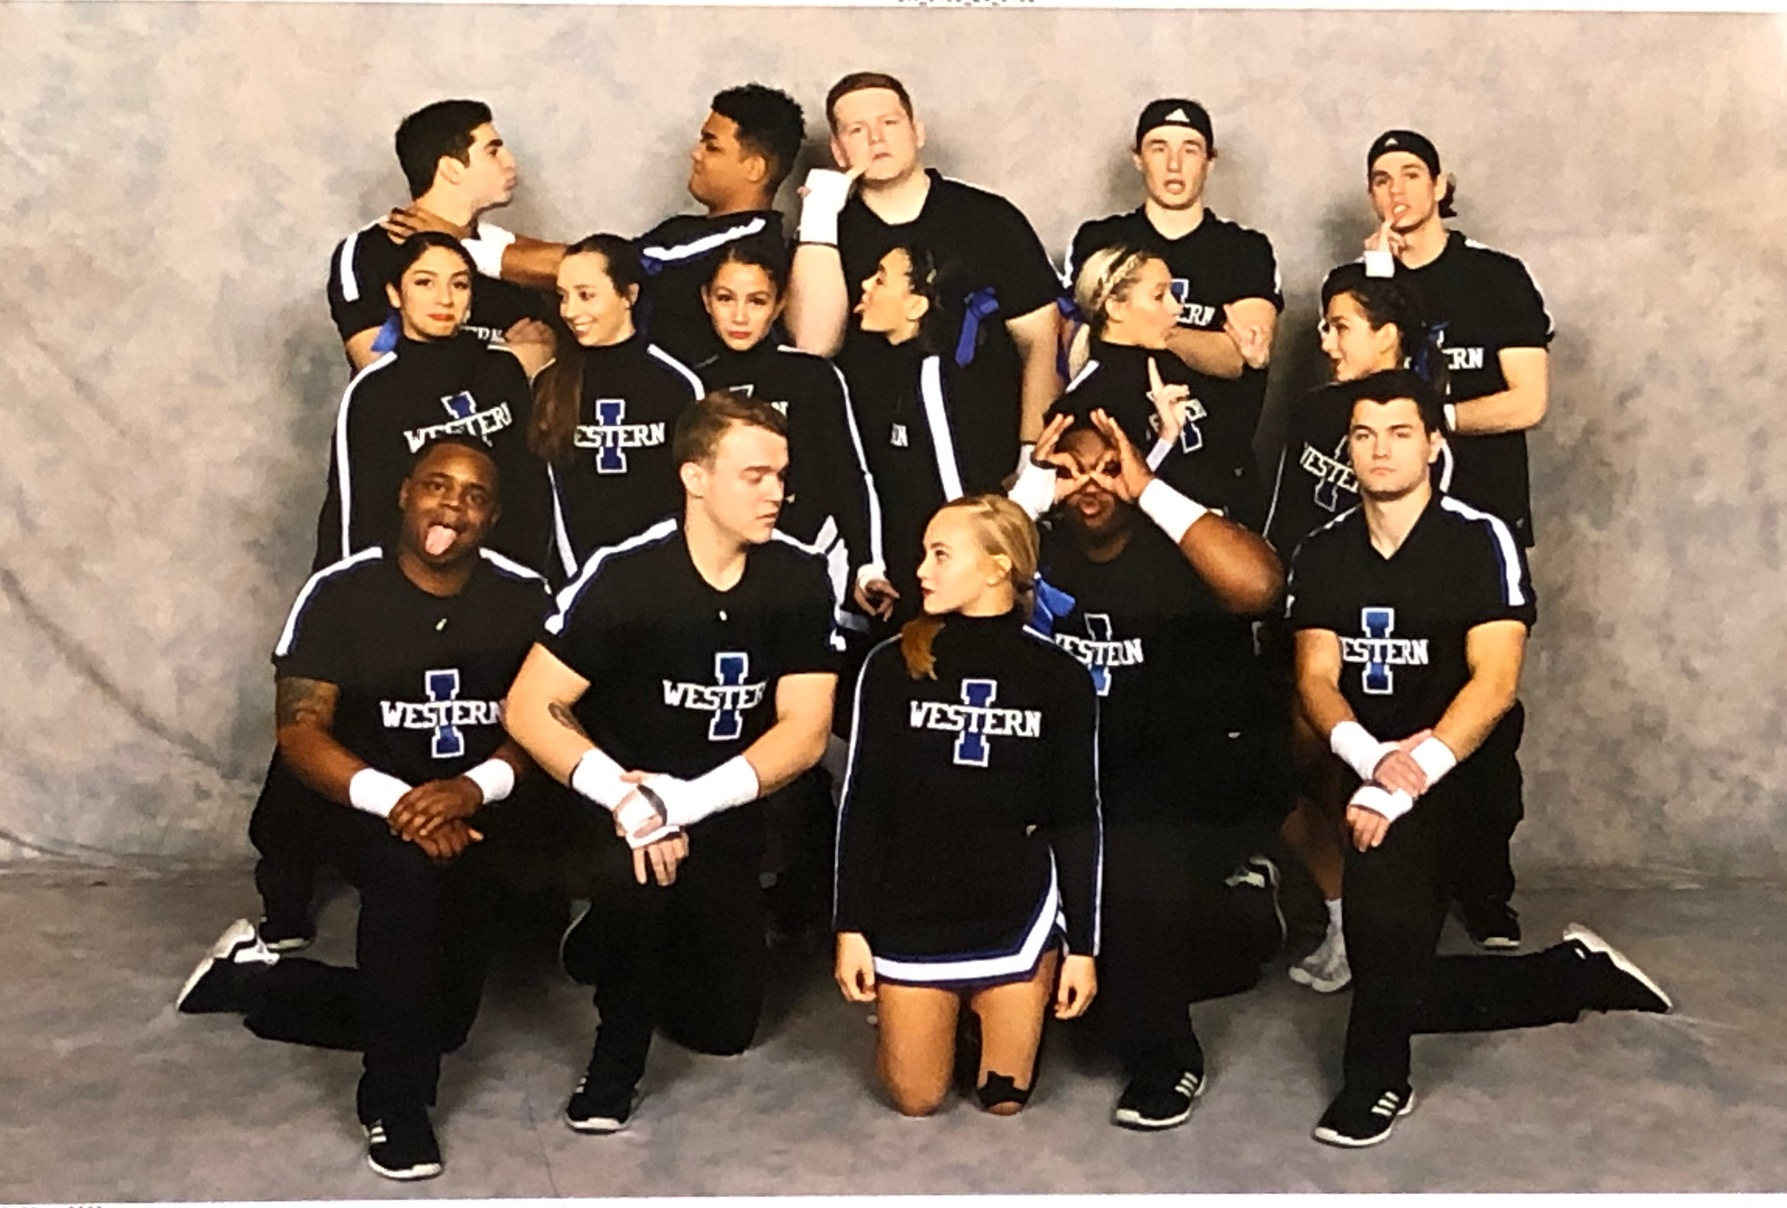 Reiver Cheer brings it at National competition